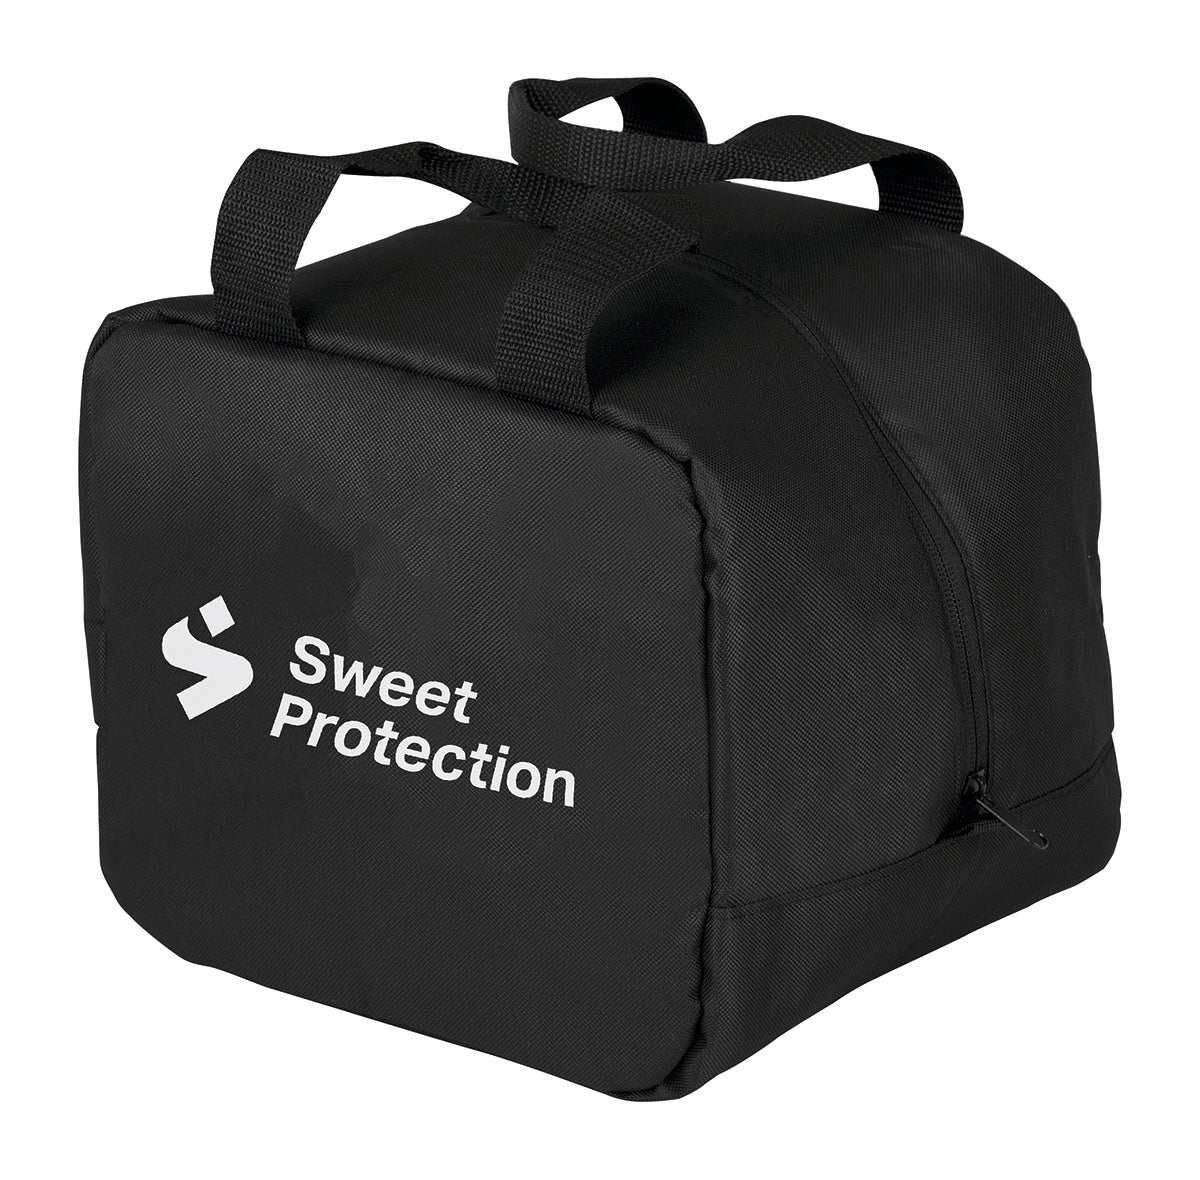 Sweet Protection Universal Skihjelm Bag thumbnail